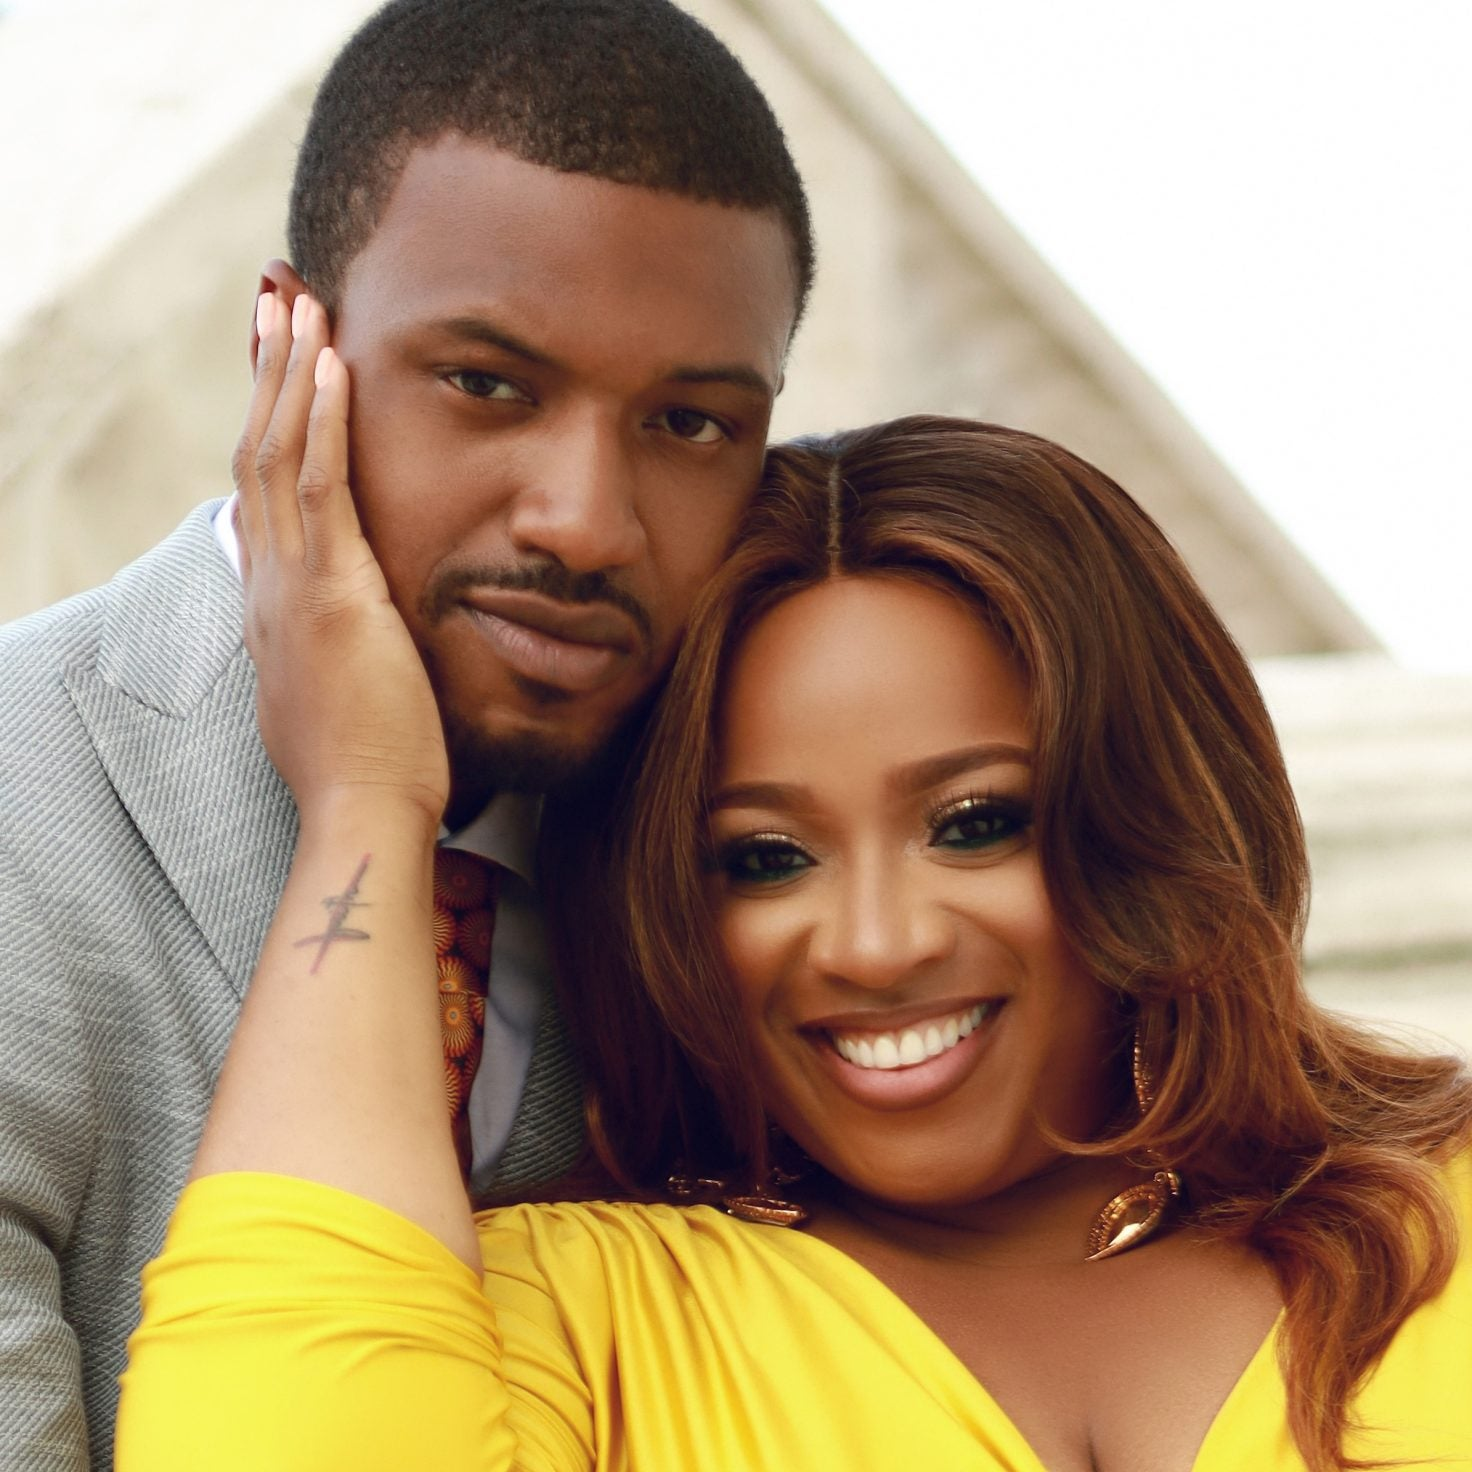 EXCLUSIVE: See Kierra Sheard and Fiancé Jordan Kelly's Engagement Photos